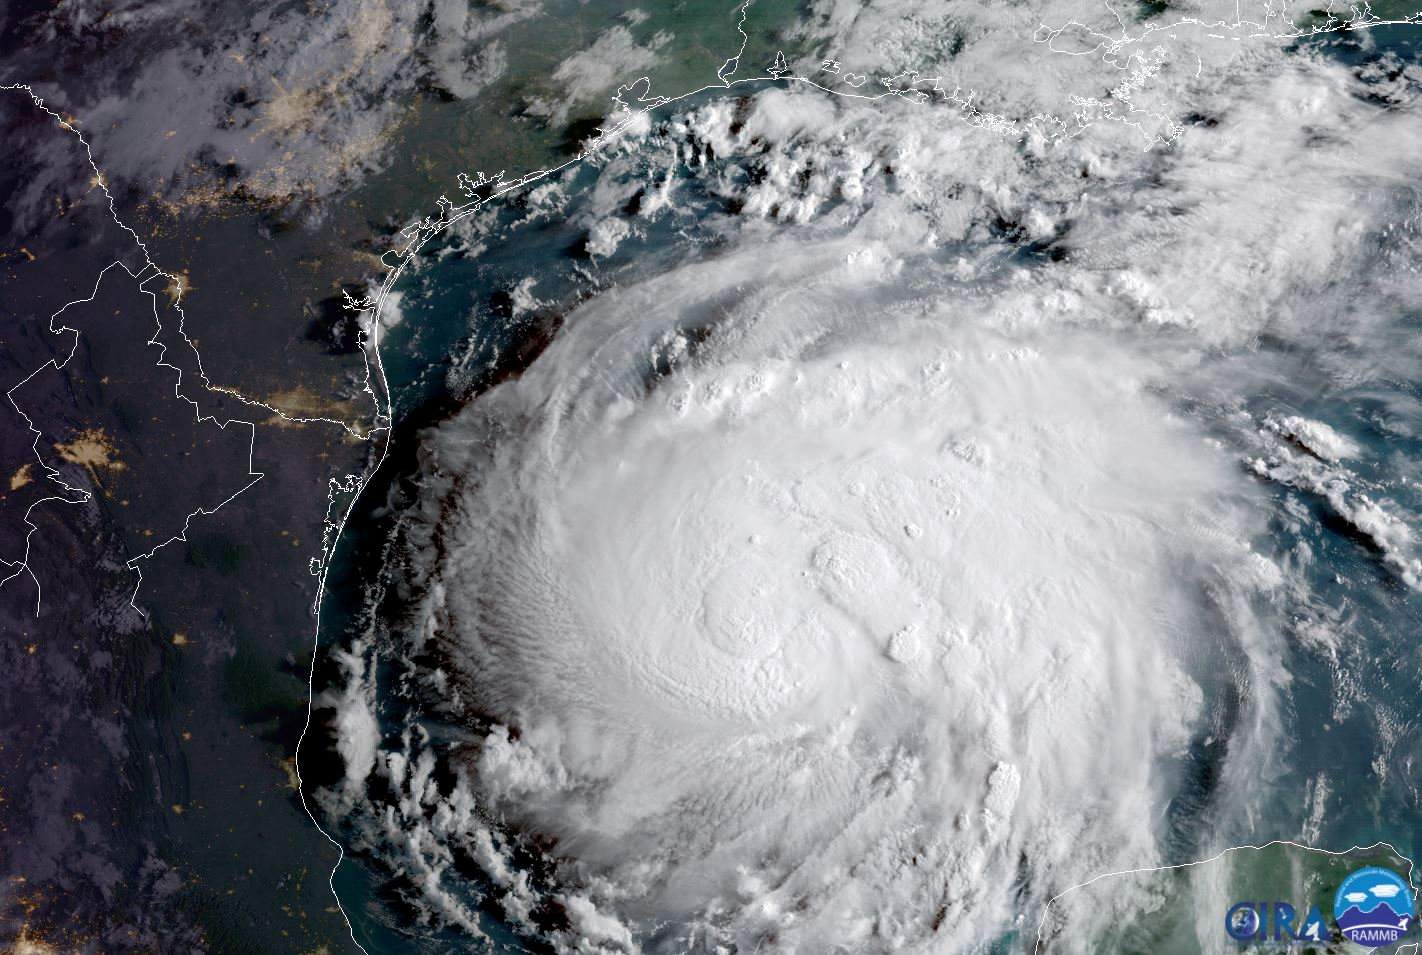 Hurricane Harvey is seen in the Texas Gulf Coast, U.S., in this NOAA GOES satellite image on August 24, 2017. NOAA/Handout via Reuters